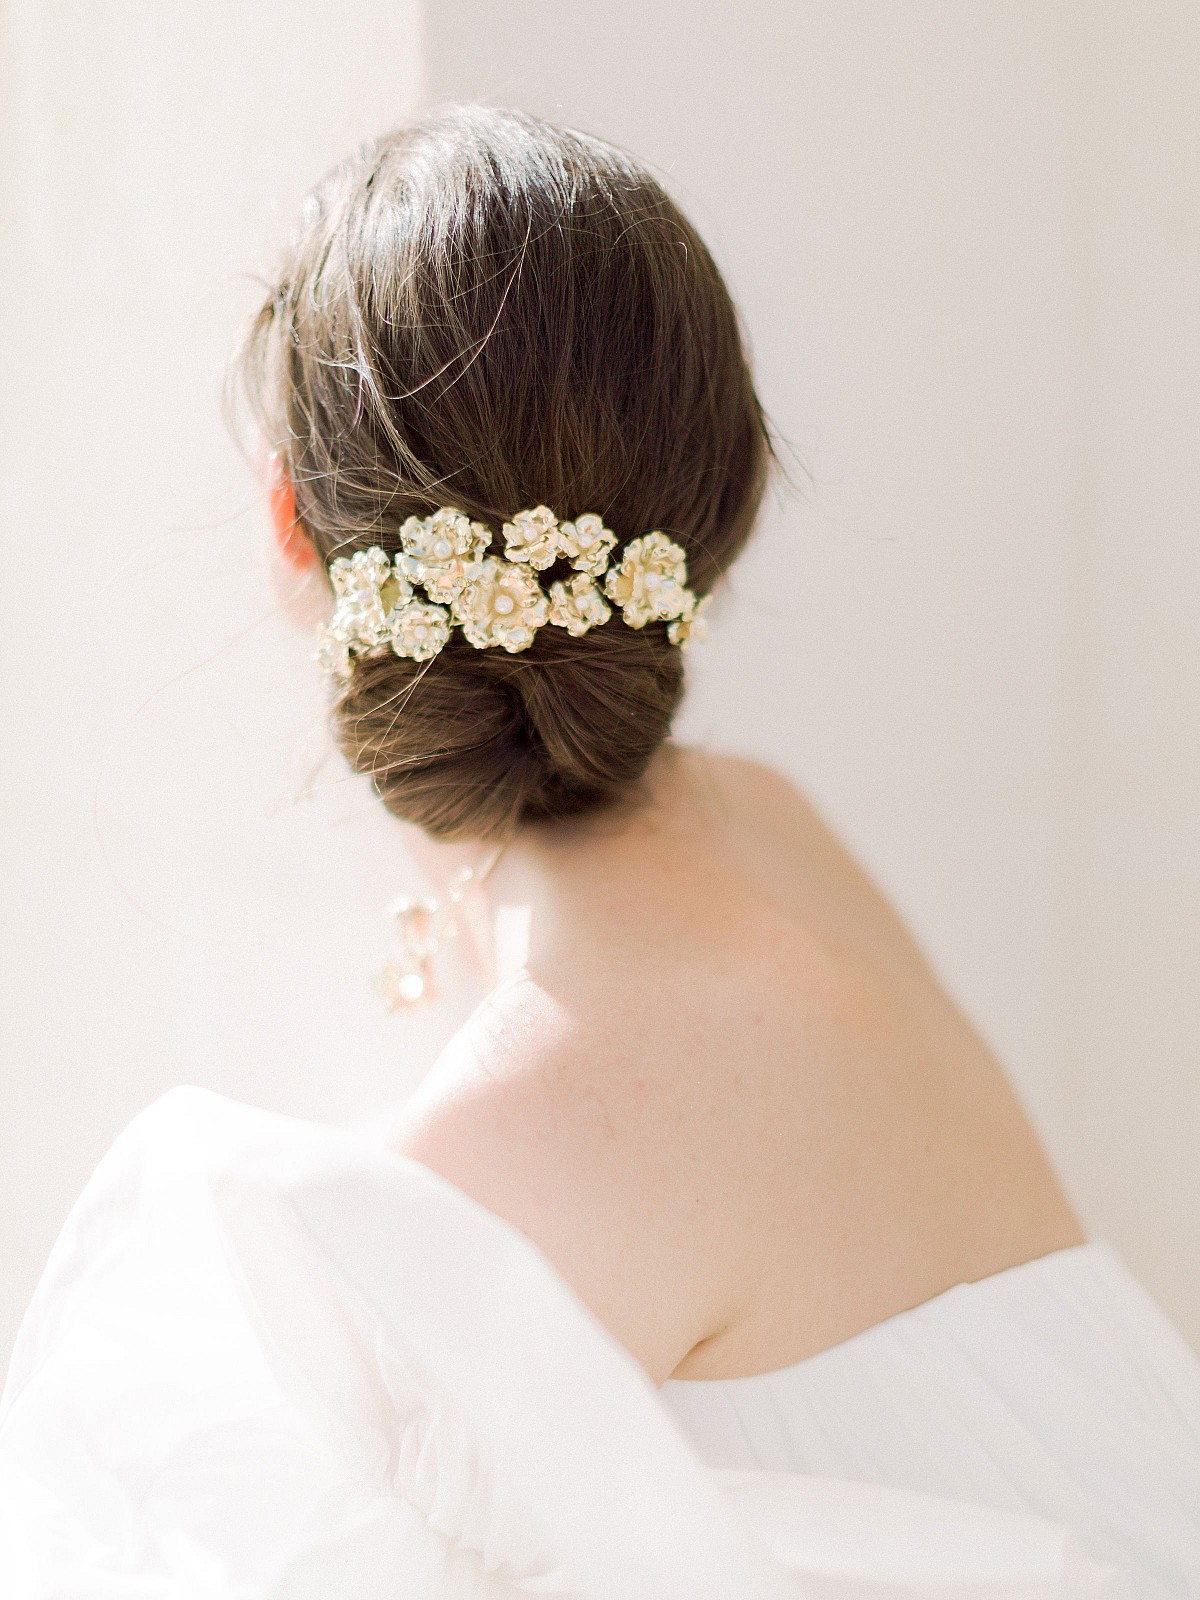 Perfect Up & Down Bridal Hairstyles for Your 2022 Wedding by Frank Giacone